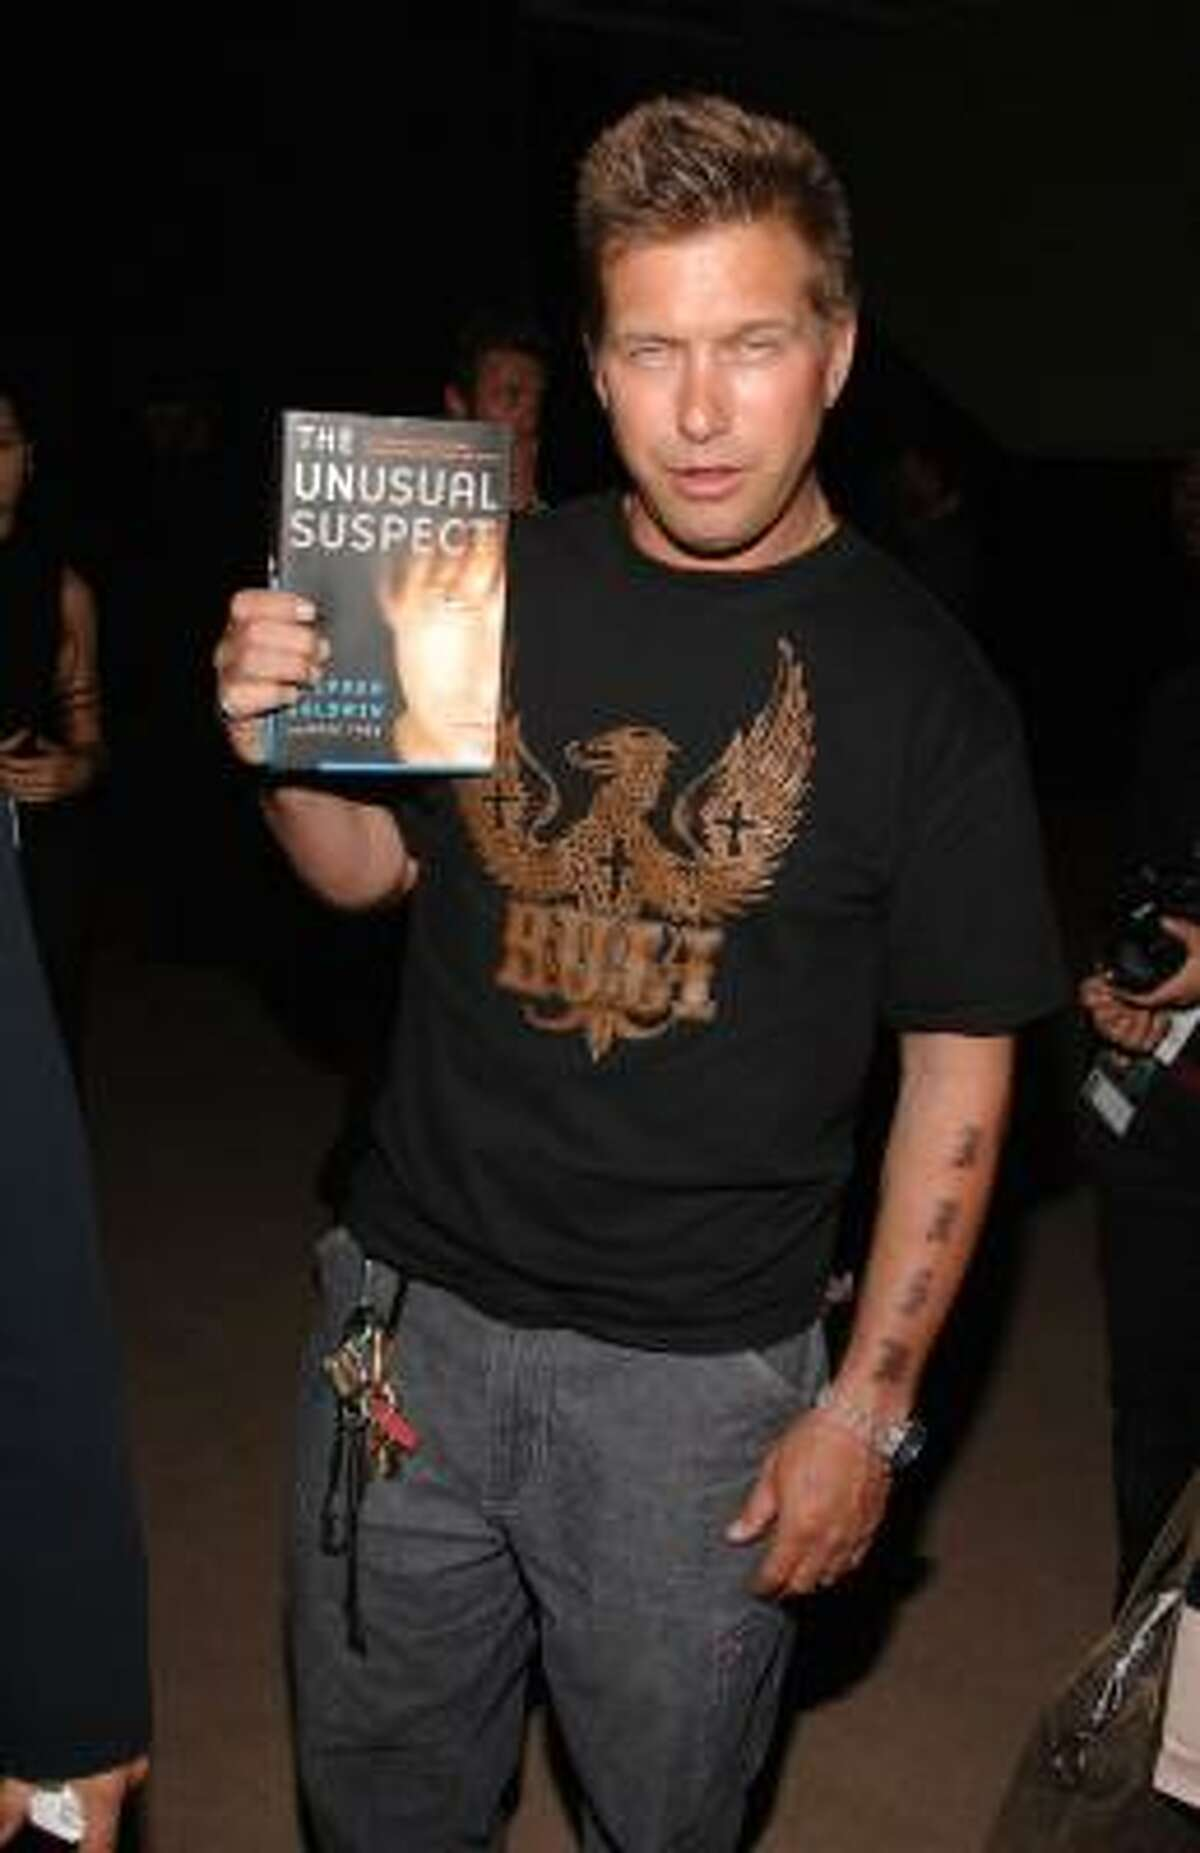 Stephen Baldwin The youngest Baldwin got baptized shortly after 9/11, with the encouragement of his born-again wife and housekeeper, he told The 700 Club. He now refuses to take roles in overly sexy or violent movies, which he says has made him bankrupt.